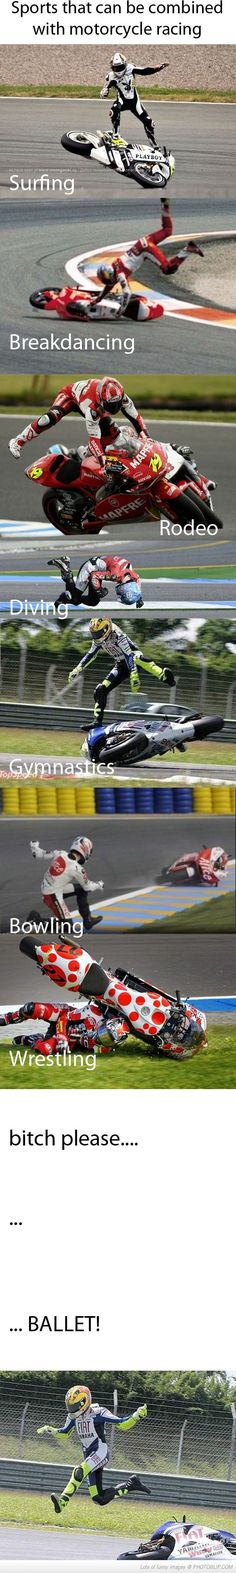 Funny pictures about Sports that can be combined with motorcycle racing. Oh, and cool pics about Sports that can be combined with motorcycle racing. Also, Sports that can be combined with motorcycle racing photos. Motogp, Car Memes, Funny Memes, Hilarious, Funny Gifs, Moto Enduro, Scrambler, Er6n, Racing Motorcycles